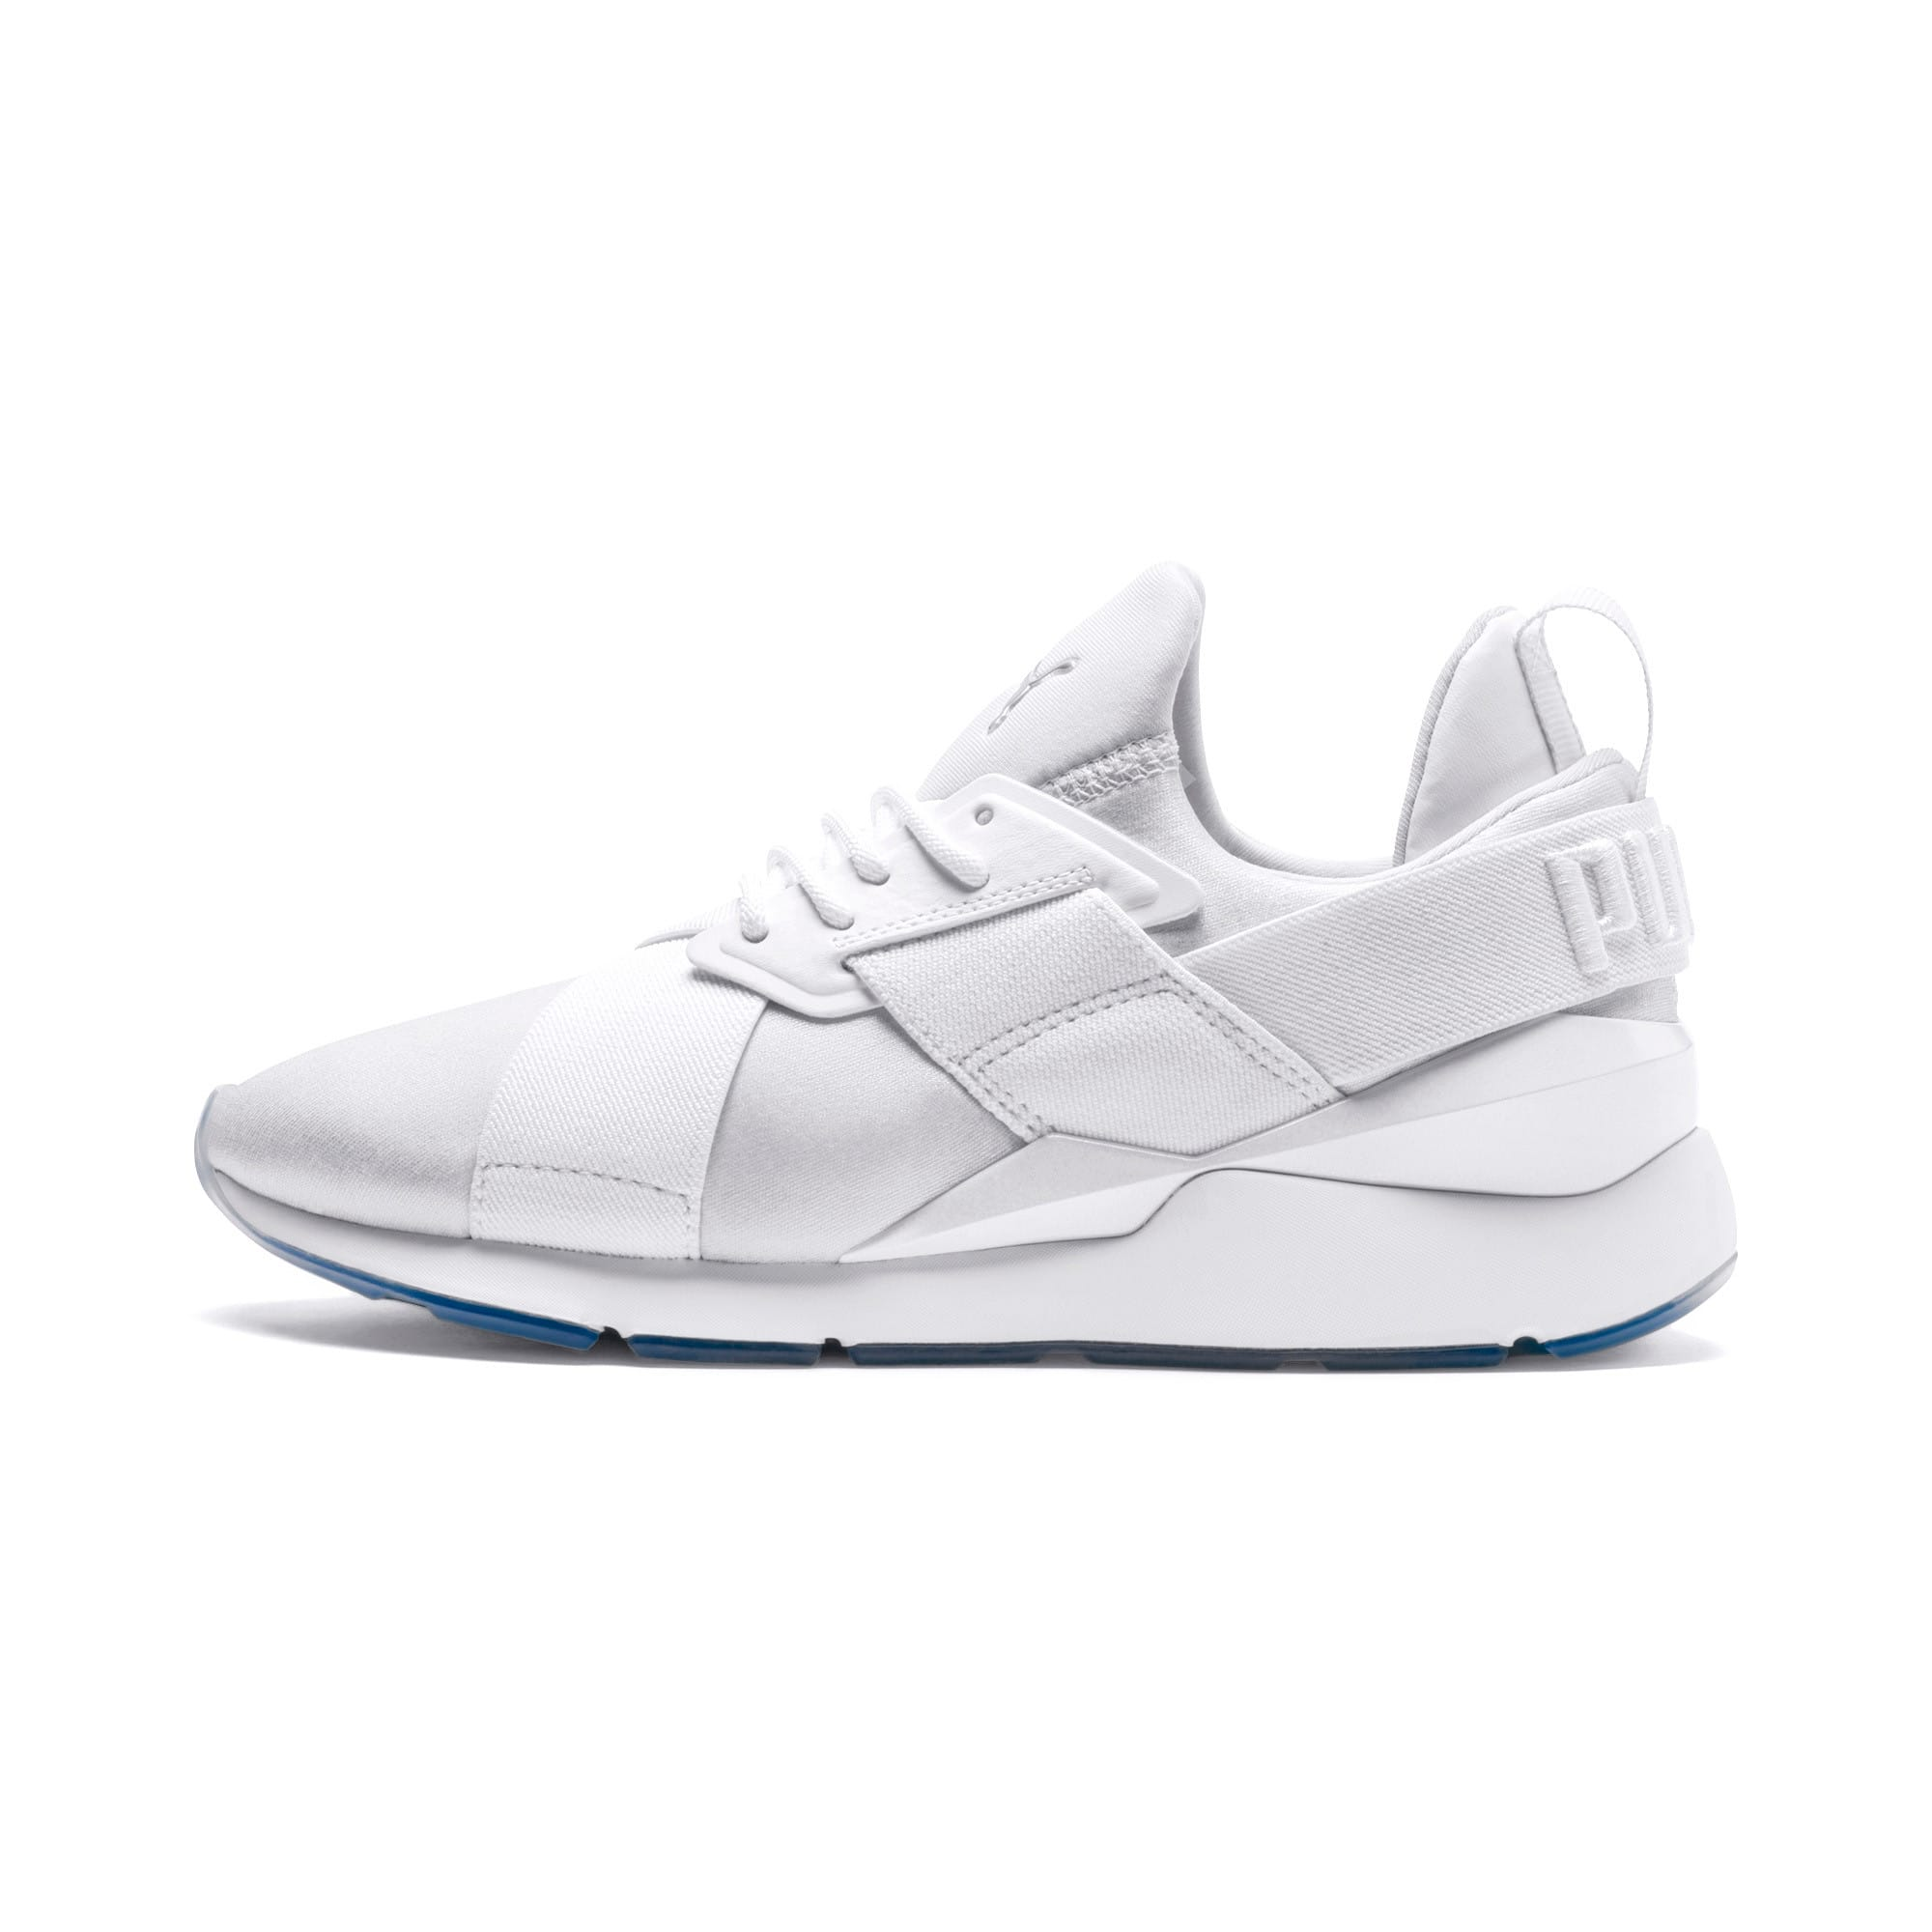 Muse Ice Women's Trainers